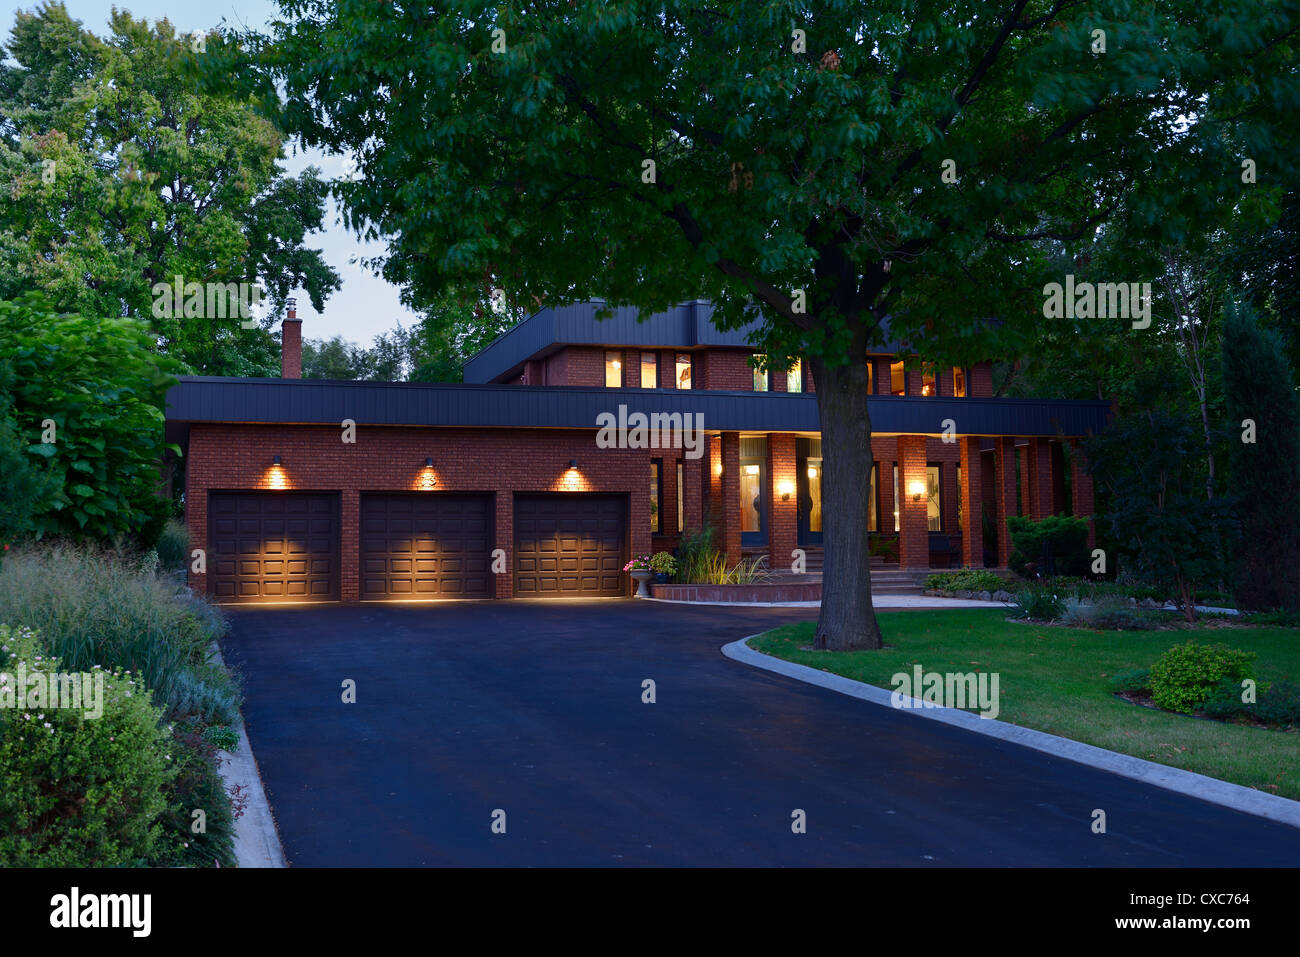 Red brick house with lights on and circular paved driveway and triple garage at dusk - Stock Image